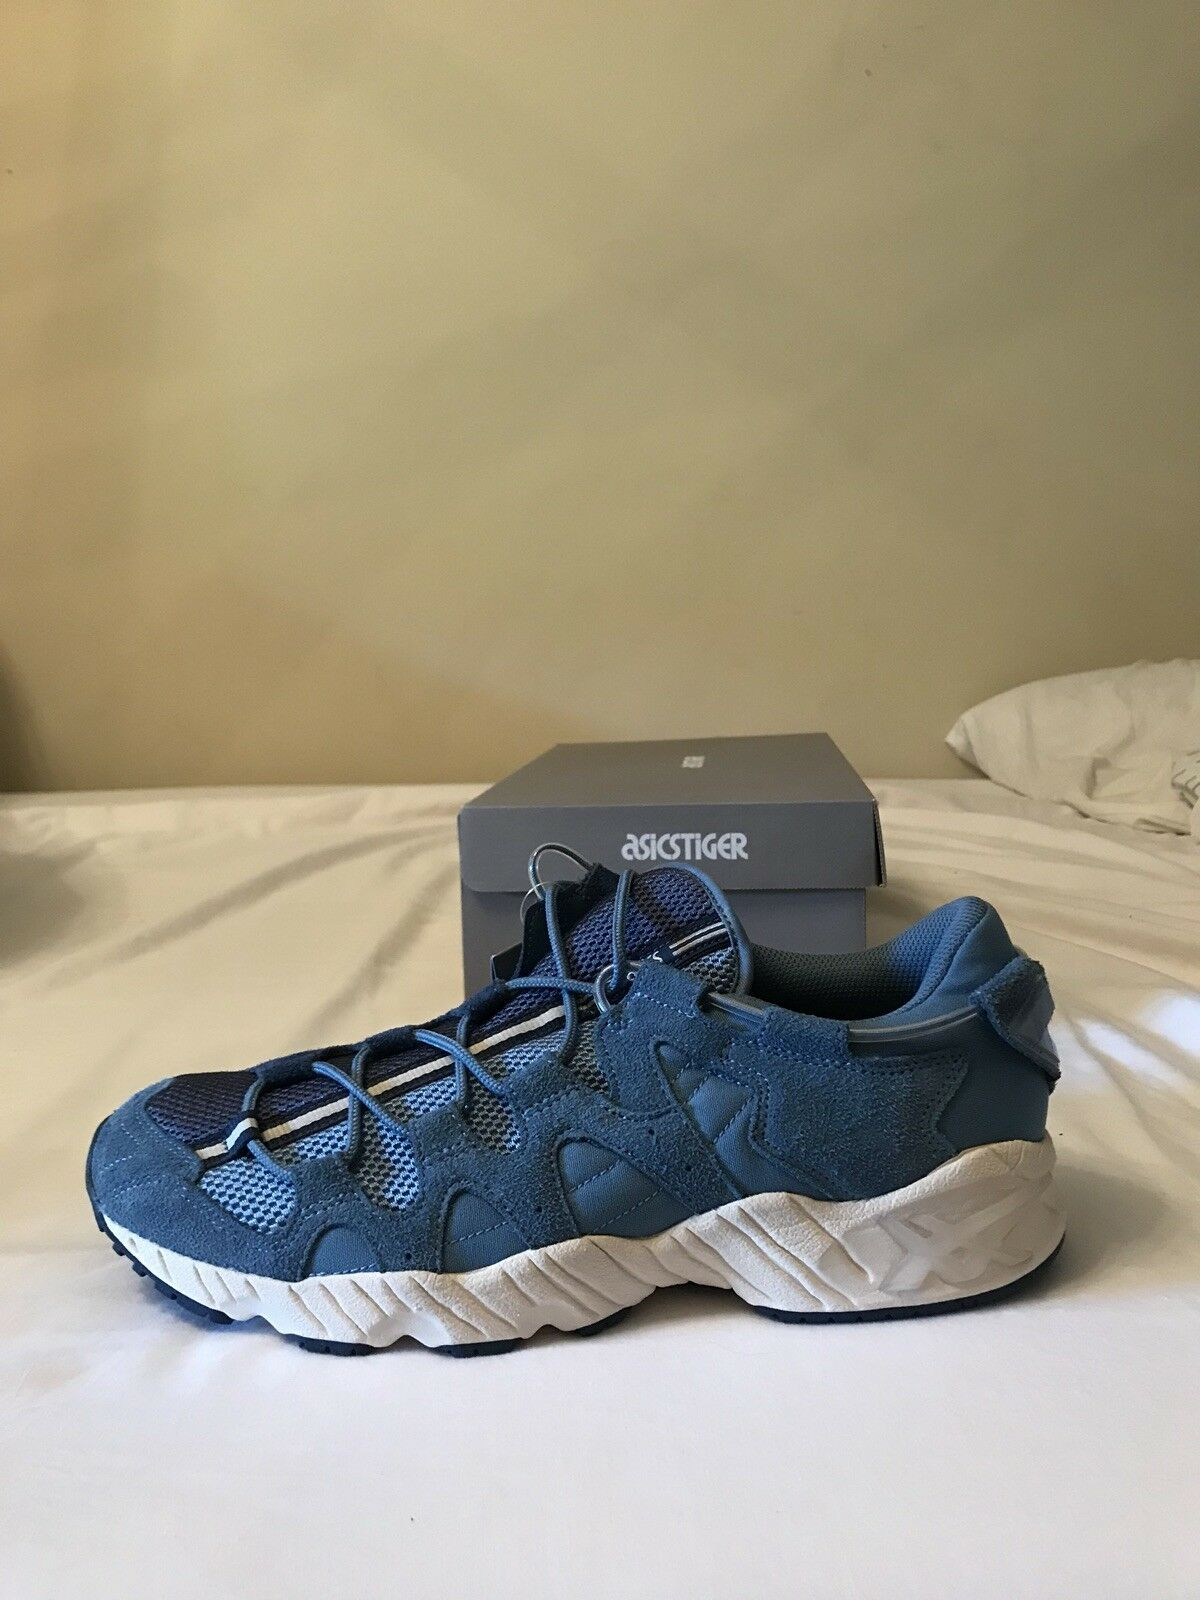 ASICS TIGER GEL-MAI MENS SNEAKERS BRAND NEW DS AND UNWORN